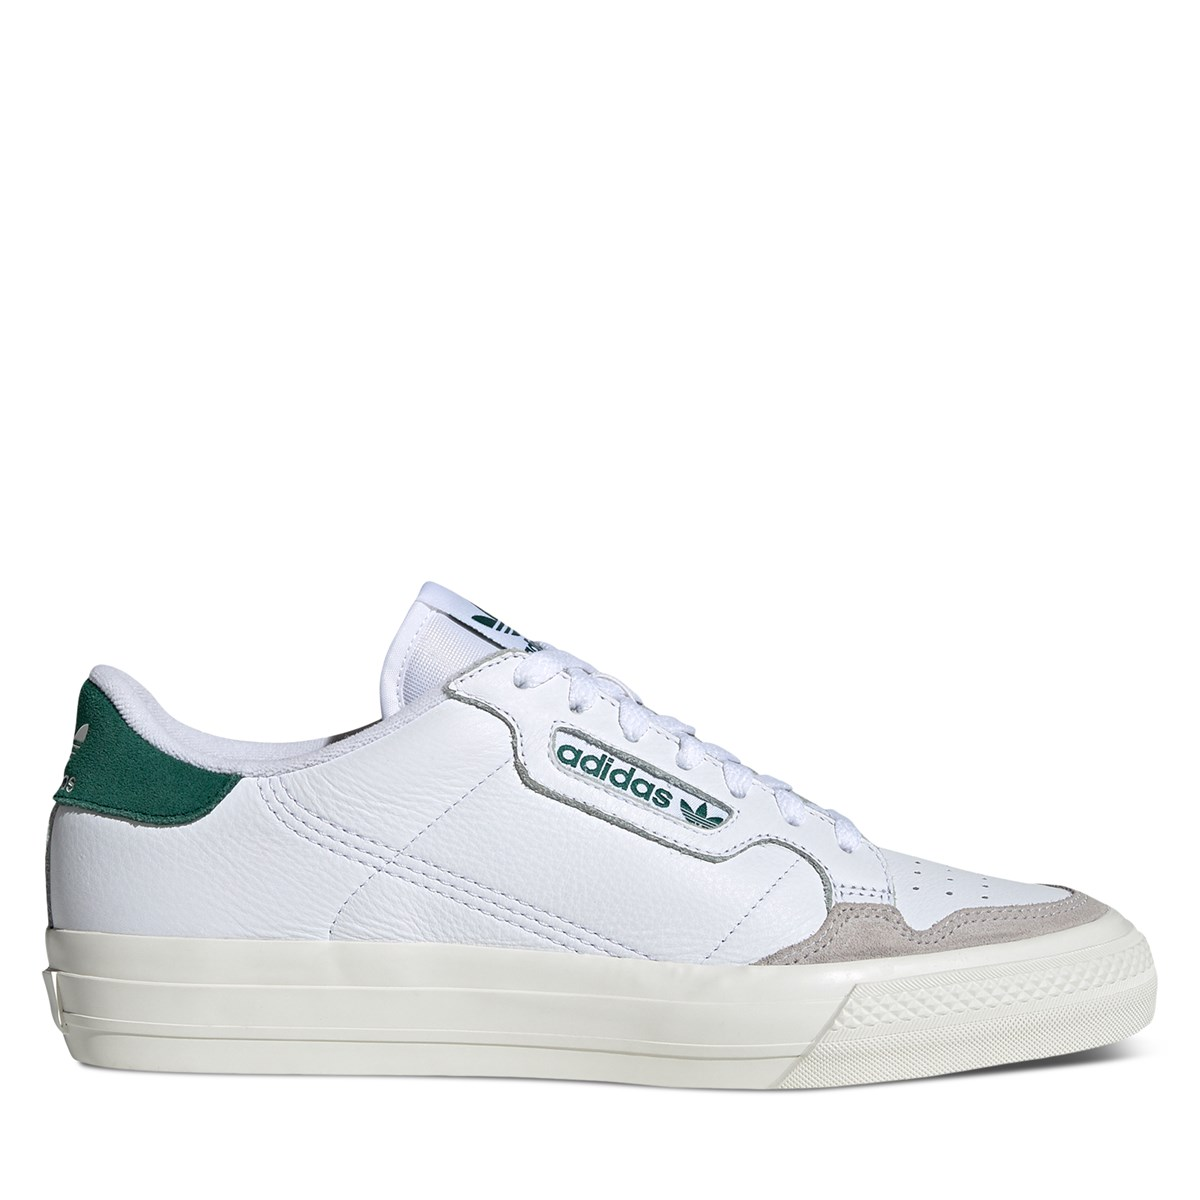 Baskets Continental Vulc blanches pour hommes